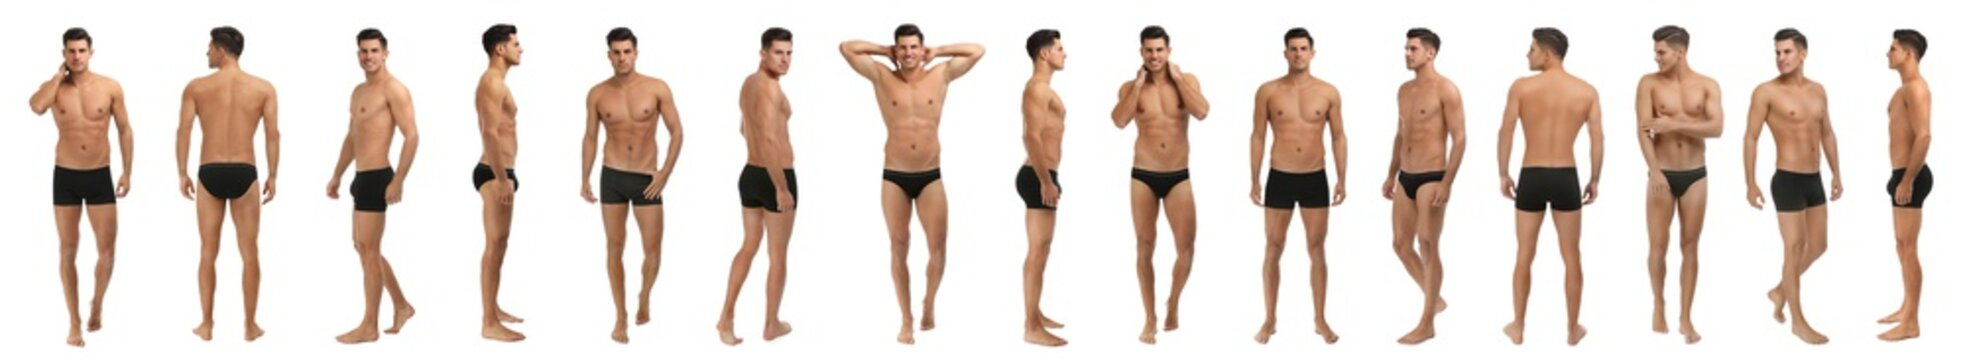 Collage of man in black underwear on white background. Banner design